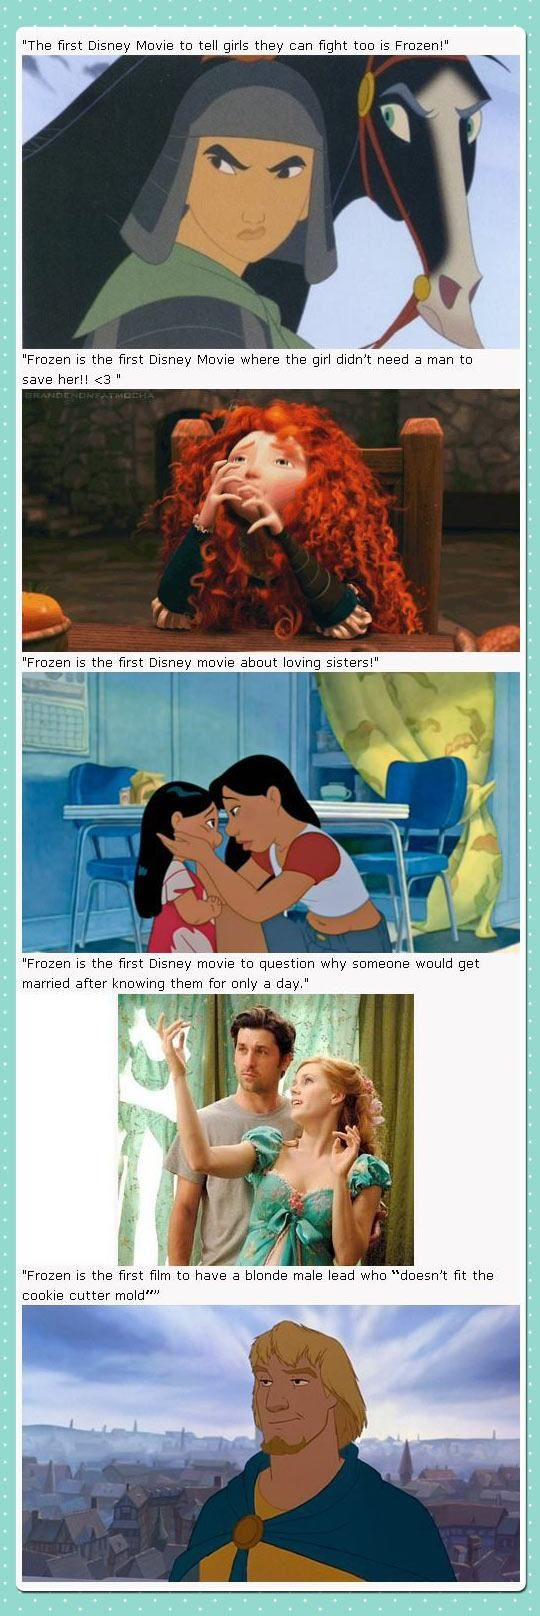 Movies According to Tumblr (19 Pics) | Pleated-Jeans.com